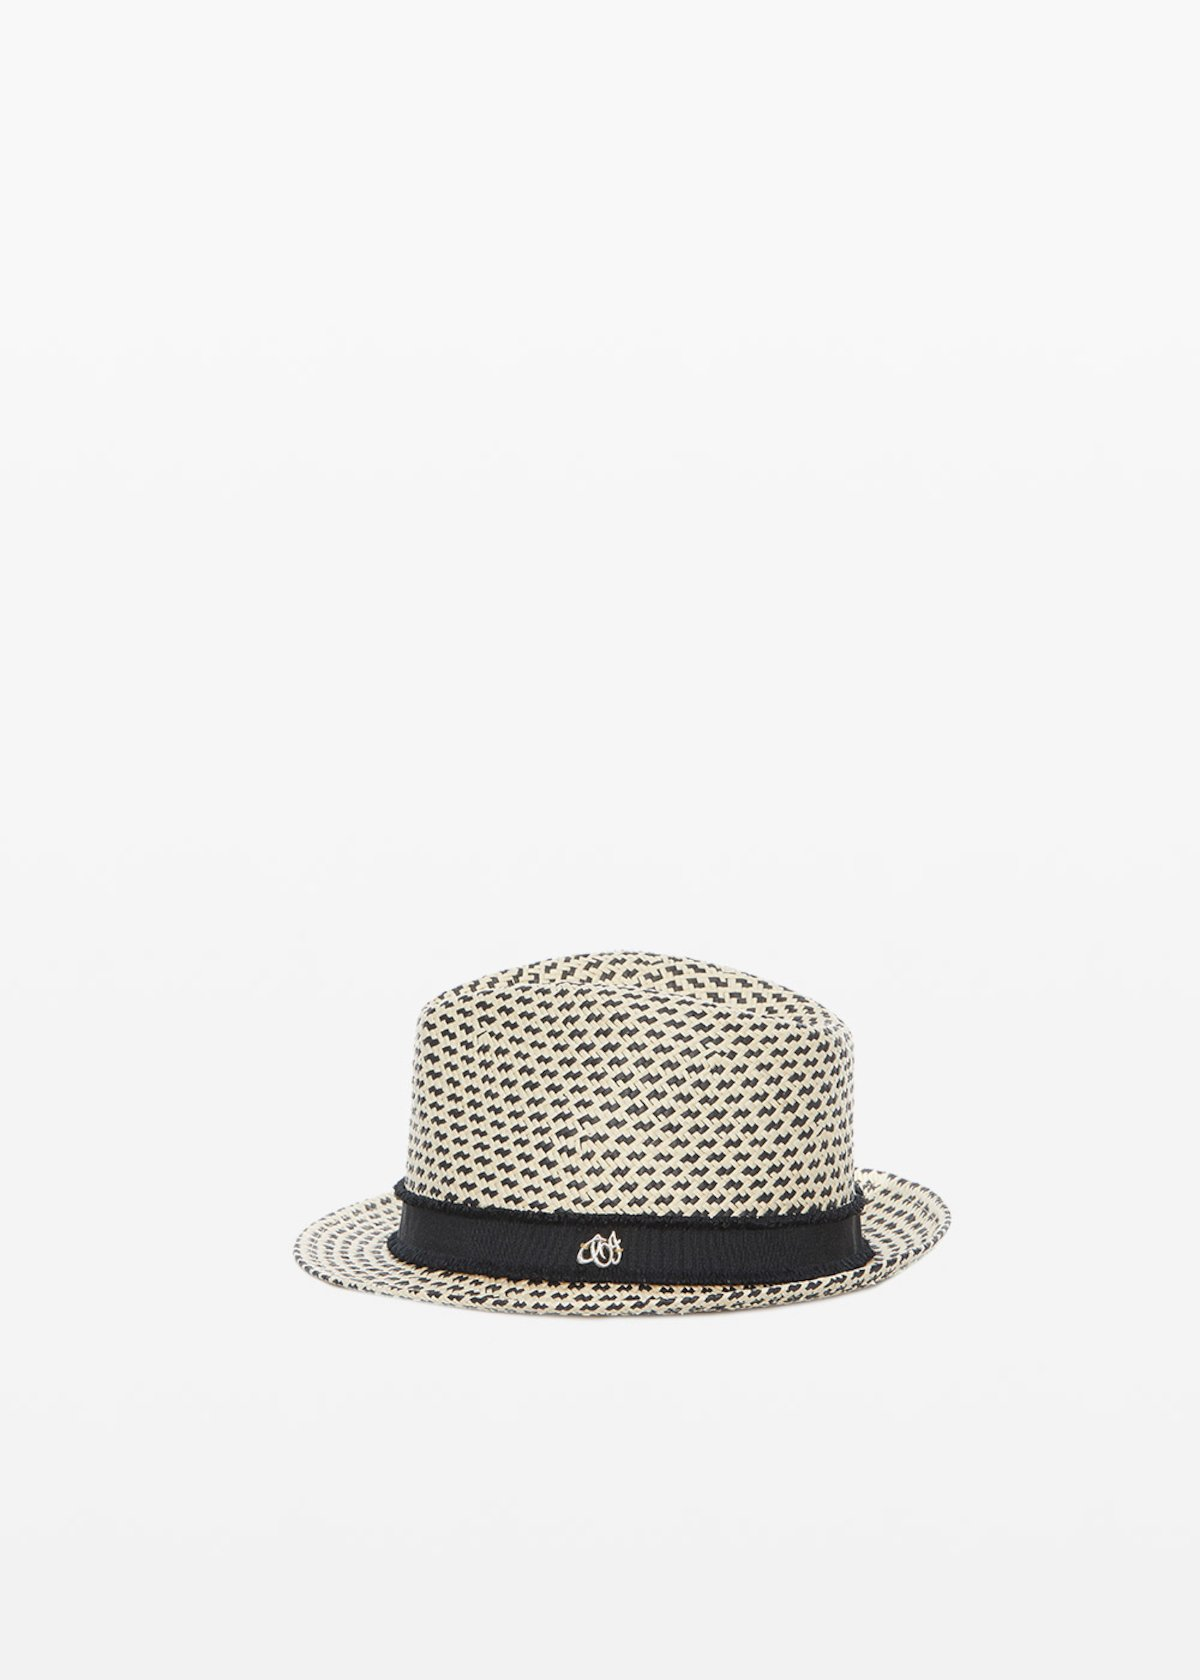 Charly straw hat with grosgrain detail - Beige / Black Fantasia - Woman